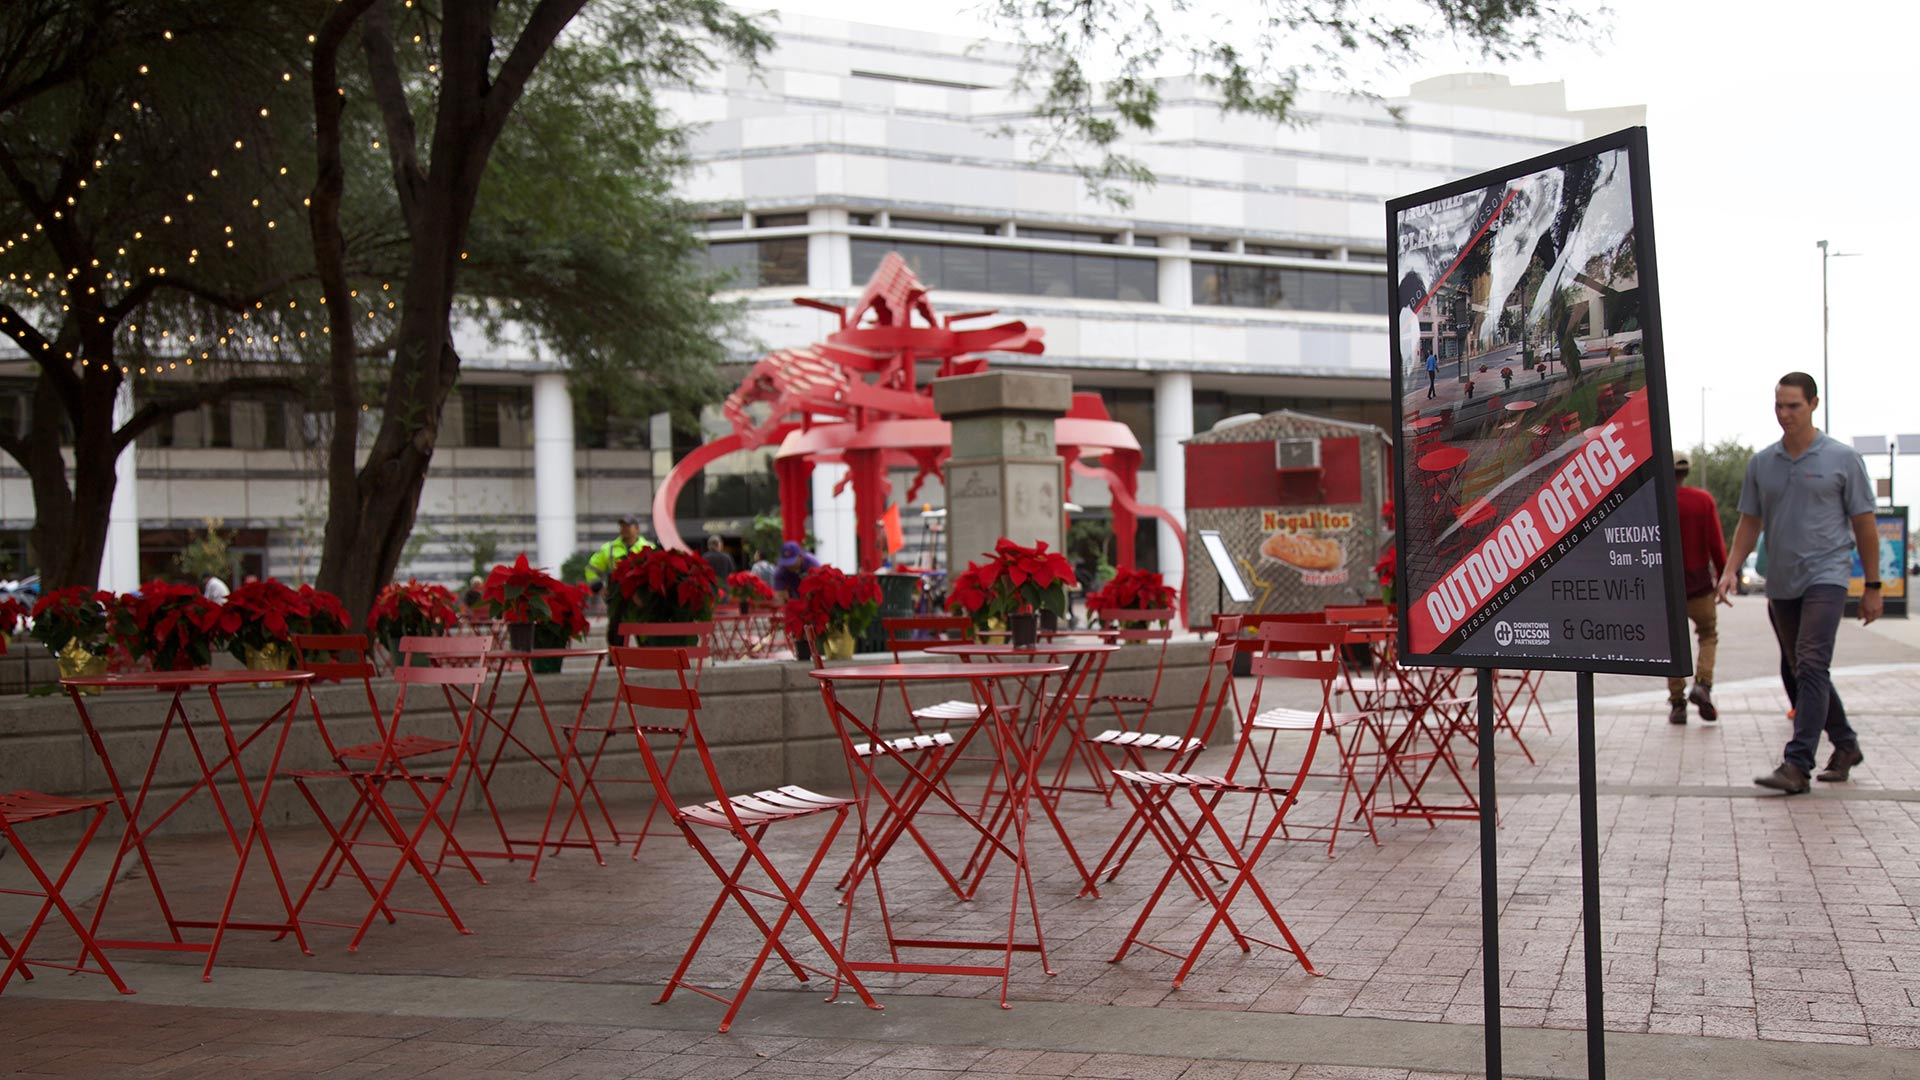 Red tables and lawn games now take up portions of the space under the trees at Jacome Plaza in downtown. The Outdoor Office is open to the public Monday through Friday from 9:00 a.m. to 5:00 p.m.